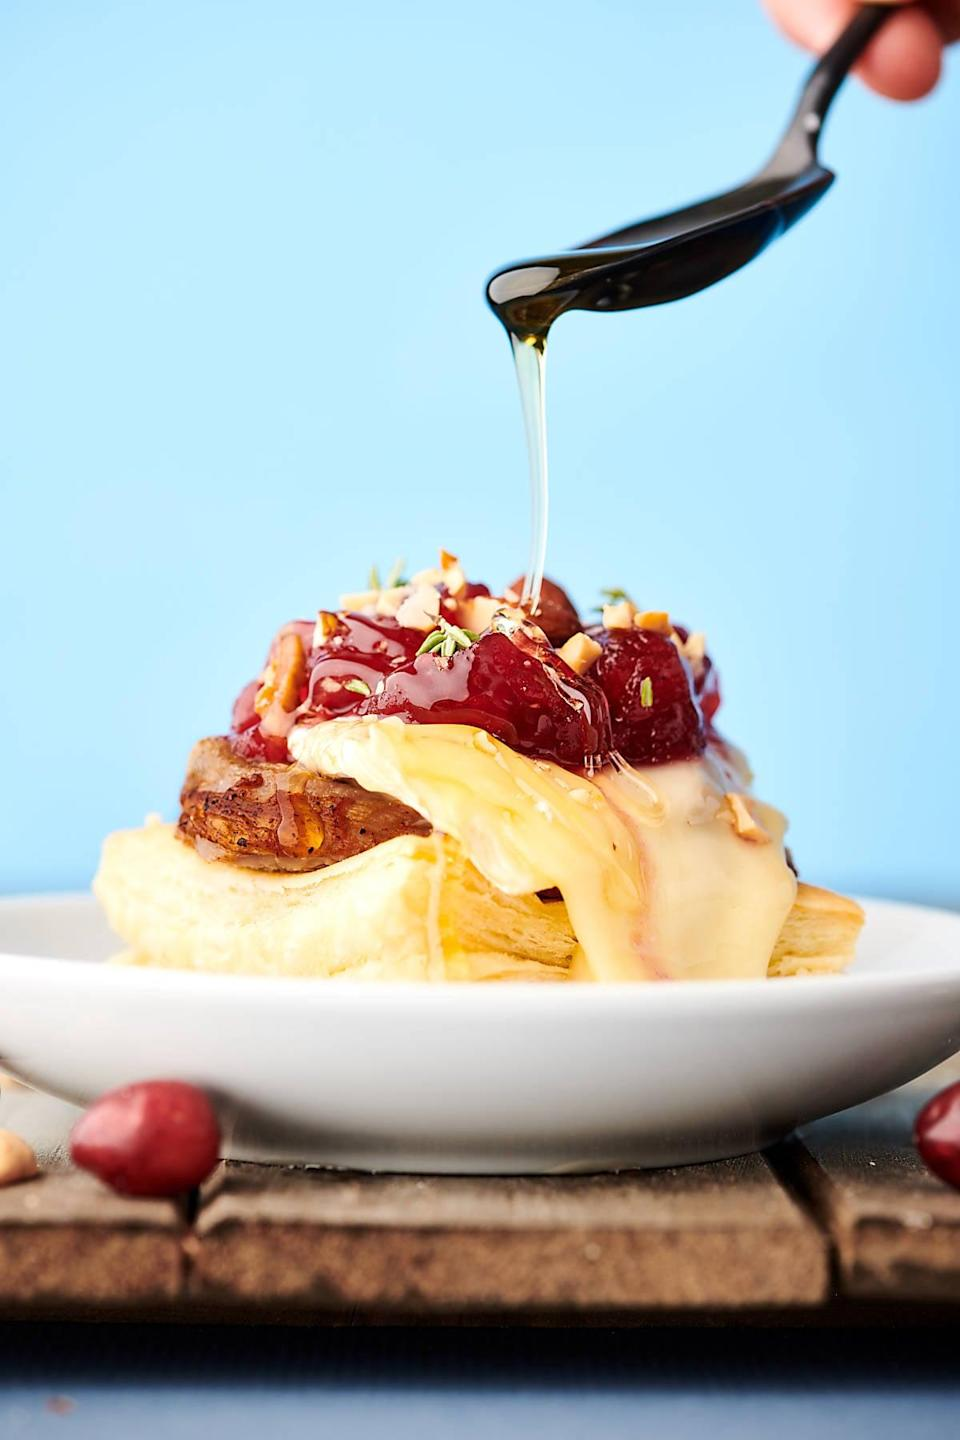 """<p>With only six ingredients needed, these puffy pastry bites will be the star of the show. Imagine sinking your teeth into a warm pastry that's topped with gooey brie, rich cranberry sauce, salty nuts, and flavorful pork tenderloin. Yum.</p> <p><strong>Get the recipe</strong>: <a href=""""https://showmetheyummy.com/pork-brie-puff-pastry-bites-recipe/"""" class=""""link rapid-noclick-resp"""" rel=""""nofollow noopener"""" target=""""_blank"""" data-ylk=""""slk:pork and brie puff pastry bites"""">pork and brie puff pastry bites</a></p>"""